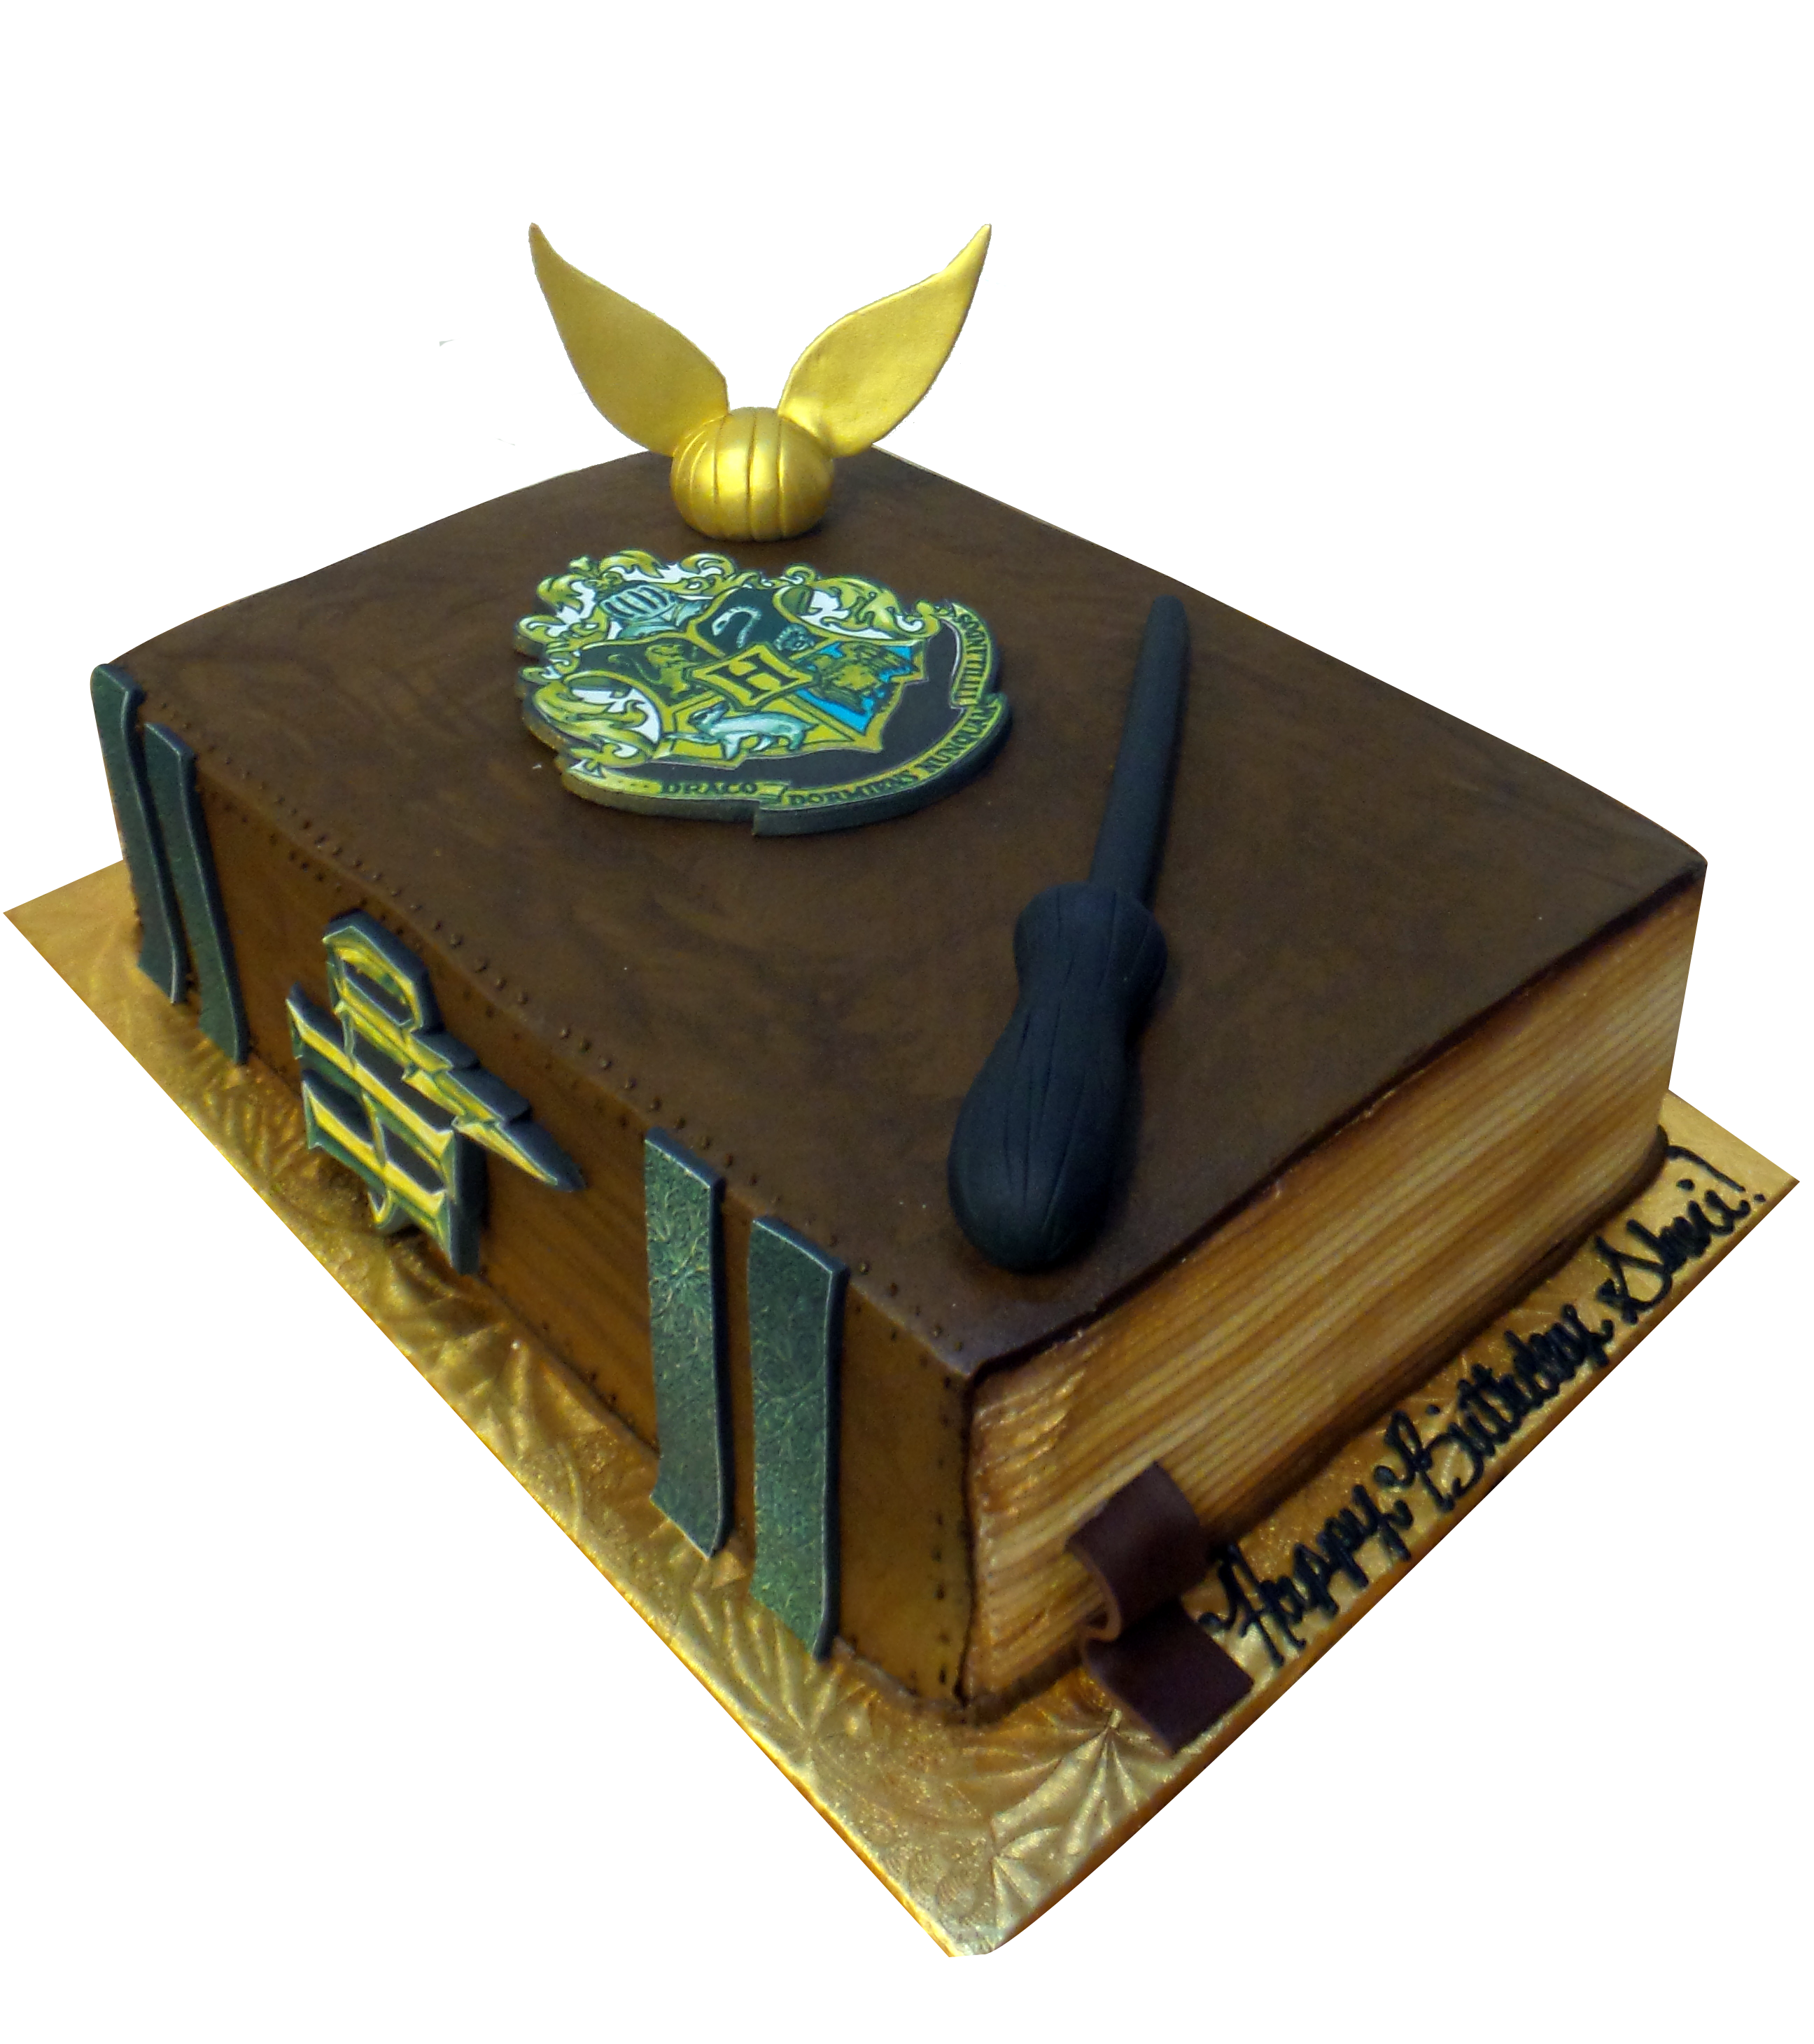 Harry Potter Wizard Book Cake